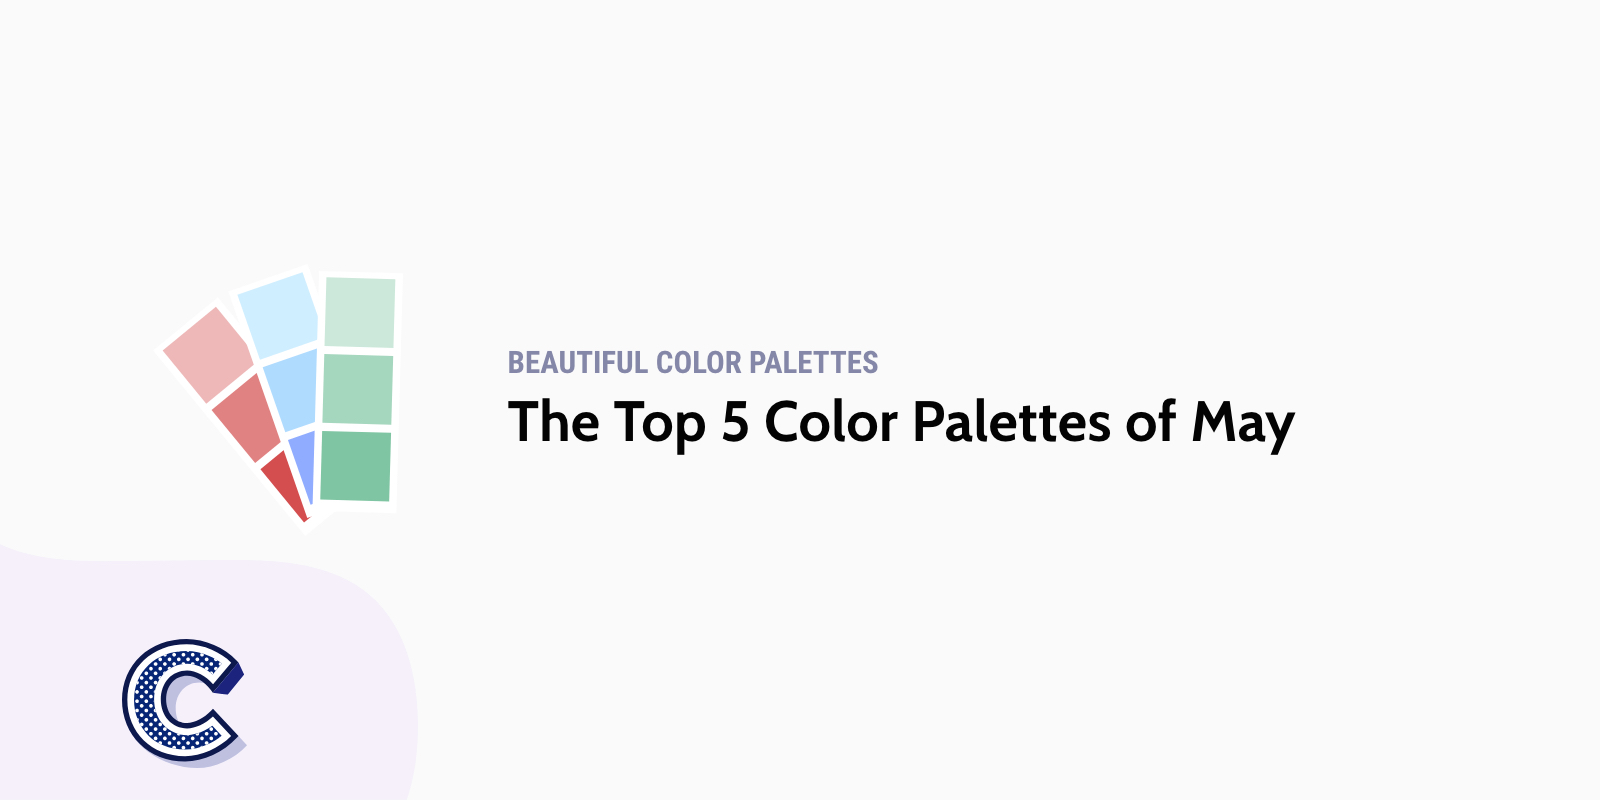 The Top 5 Color Palettes of May